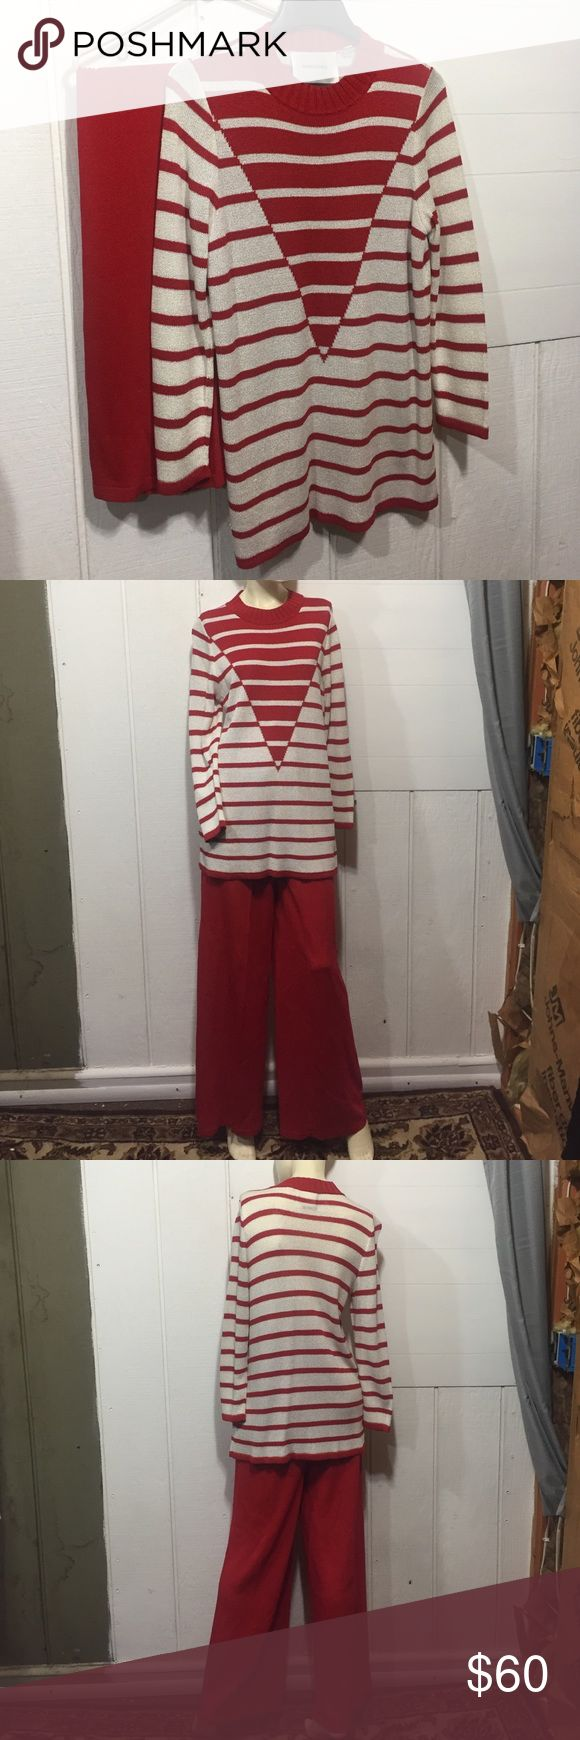 •Vintage Bravissimo OUTFIT• Vintage, Bravissimo brand outfit! Includes top and bottoms. ✨NWOT!✨ Purchased by my Aunt in the 80's in NYC. Never worn. Been in her closet ever since. Red/white. Mannequin is about 5'8 for reference. TOP: Size MEDIUM. PANTS: High-waisted. Size large. Fabric hangers inside. Elastic waistband. BOTH: Brand NWOT. 55% rayon 34% acrylic 11% nylon. Dry clean only. Made in Mexico. Bravissimo Other